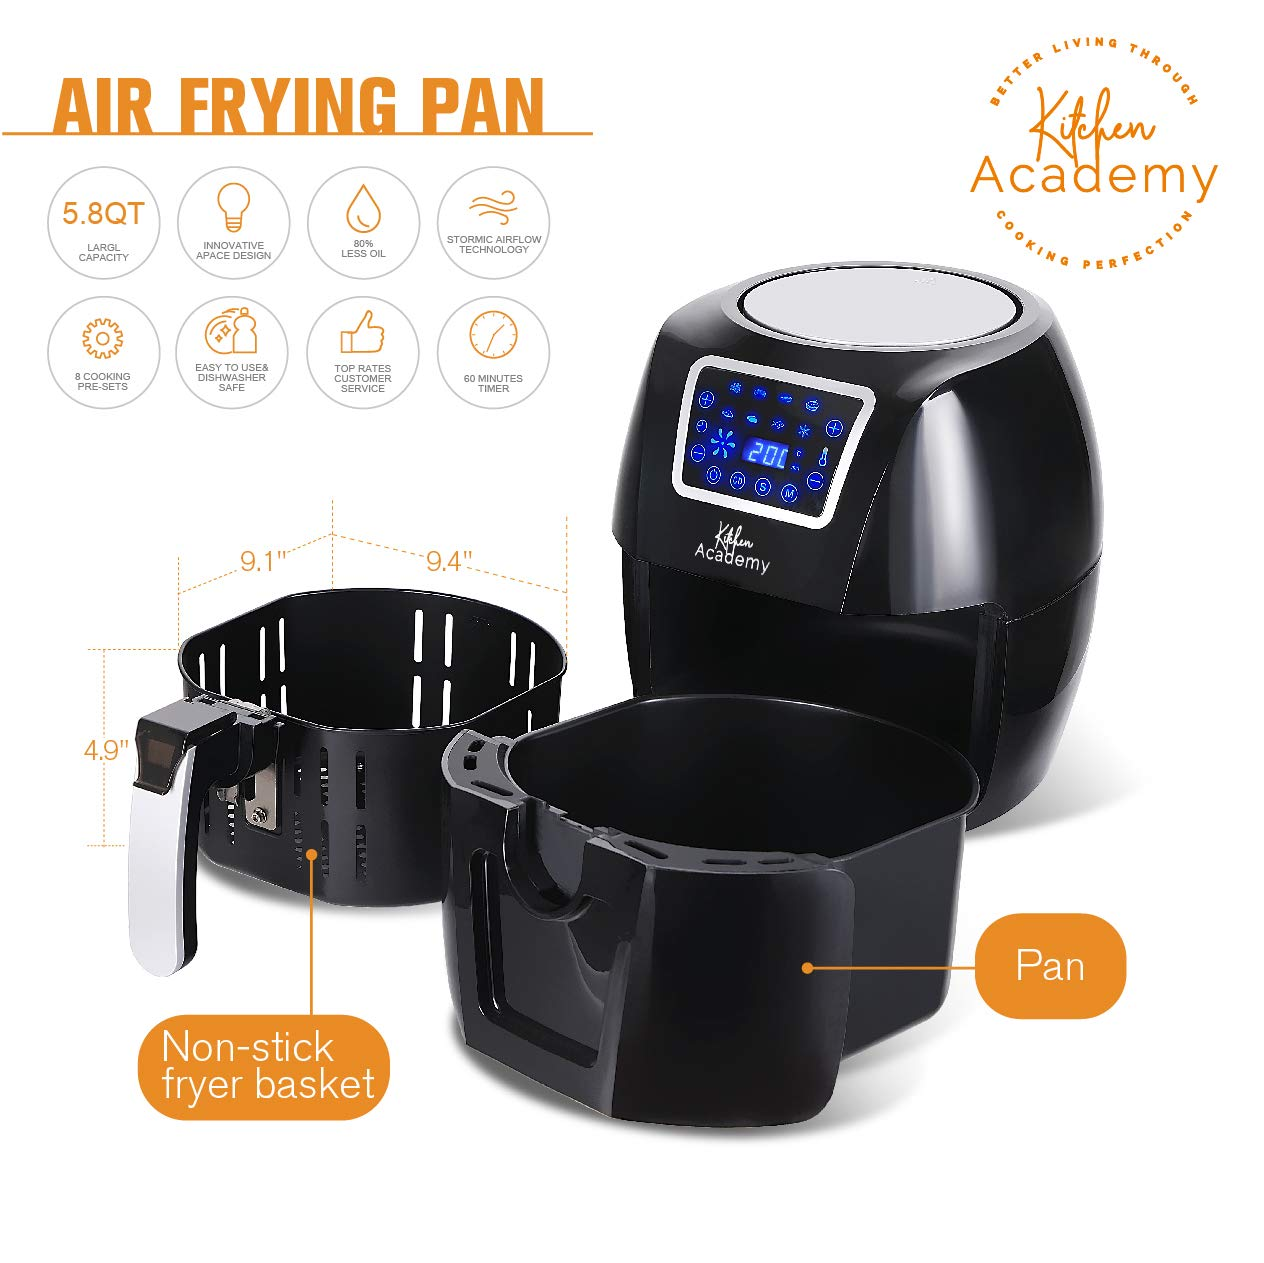 Kitchen Academy: Sản Phẩm Kitchen Academy Upgrade Large Air Fryer Oven XL